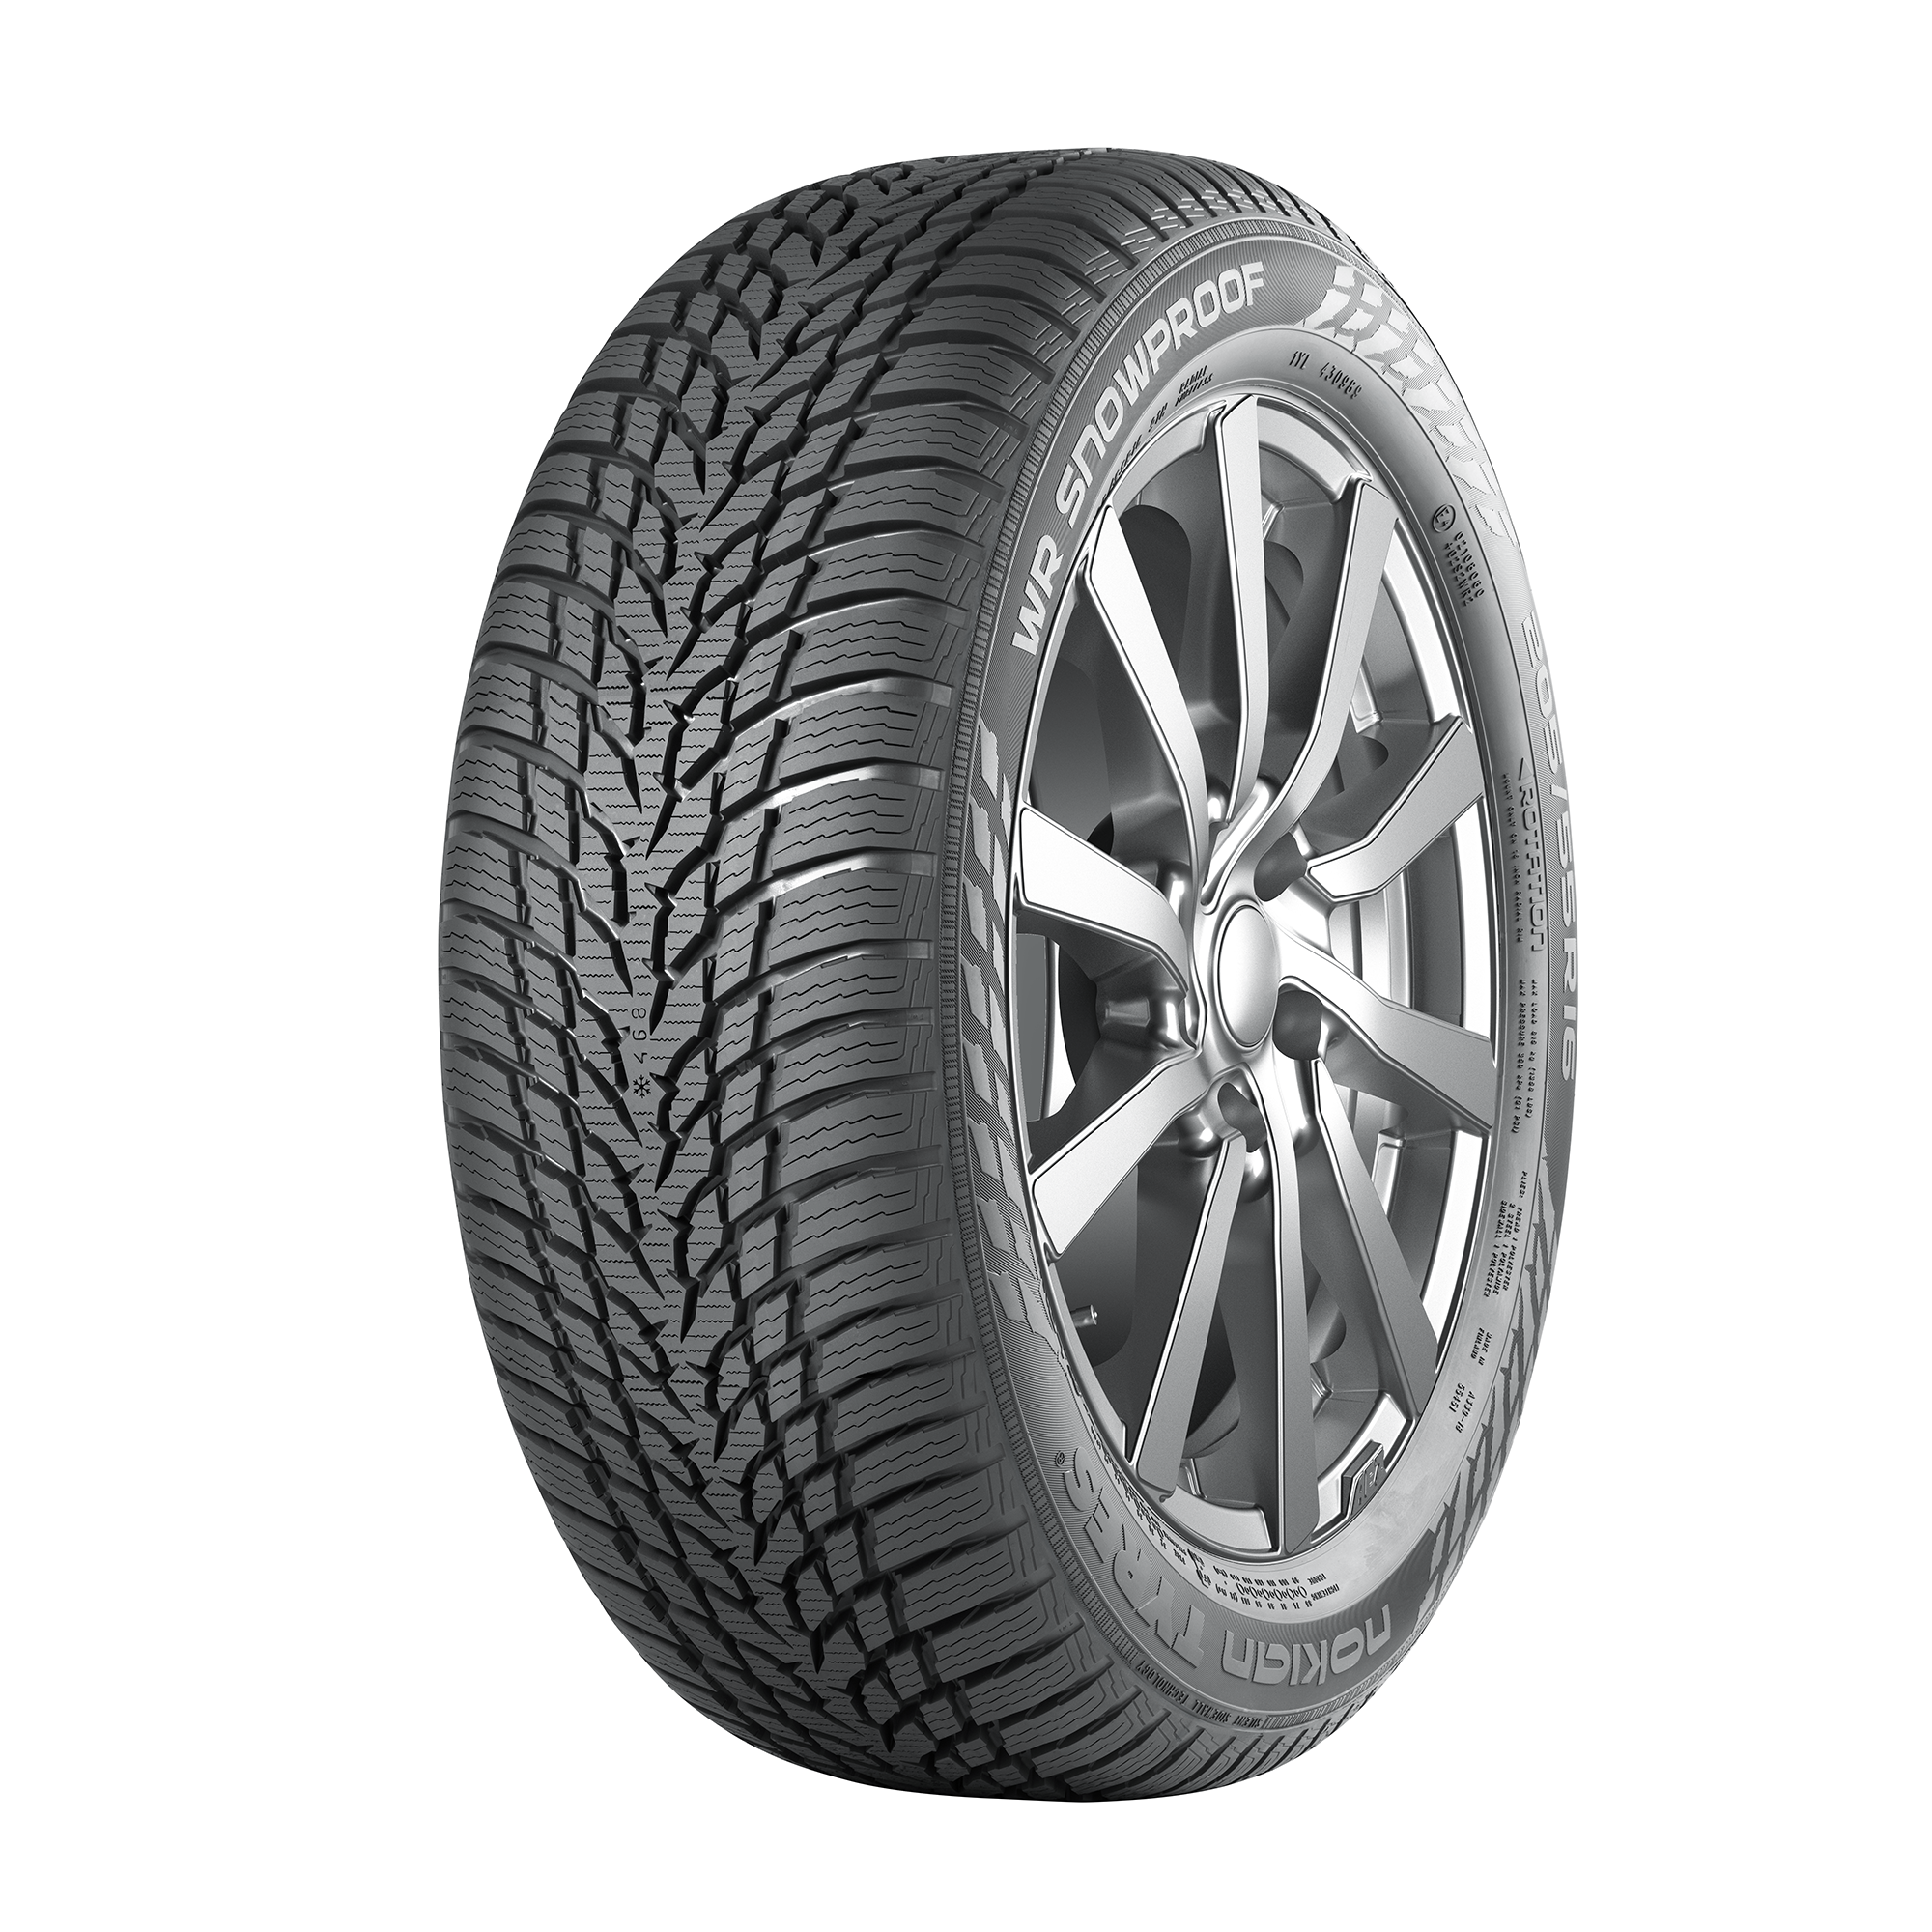 Anvelope Nokian Wr Snowproof 175/65R15 84T Iarna imagine